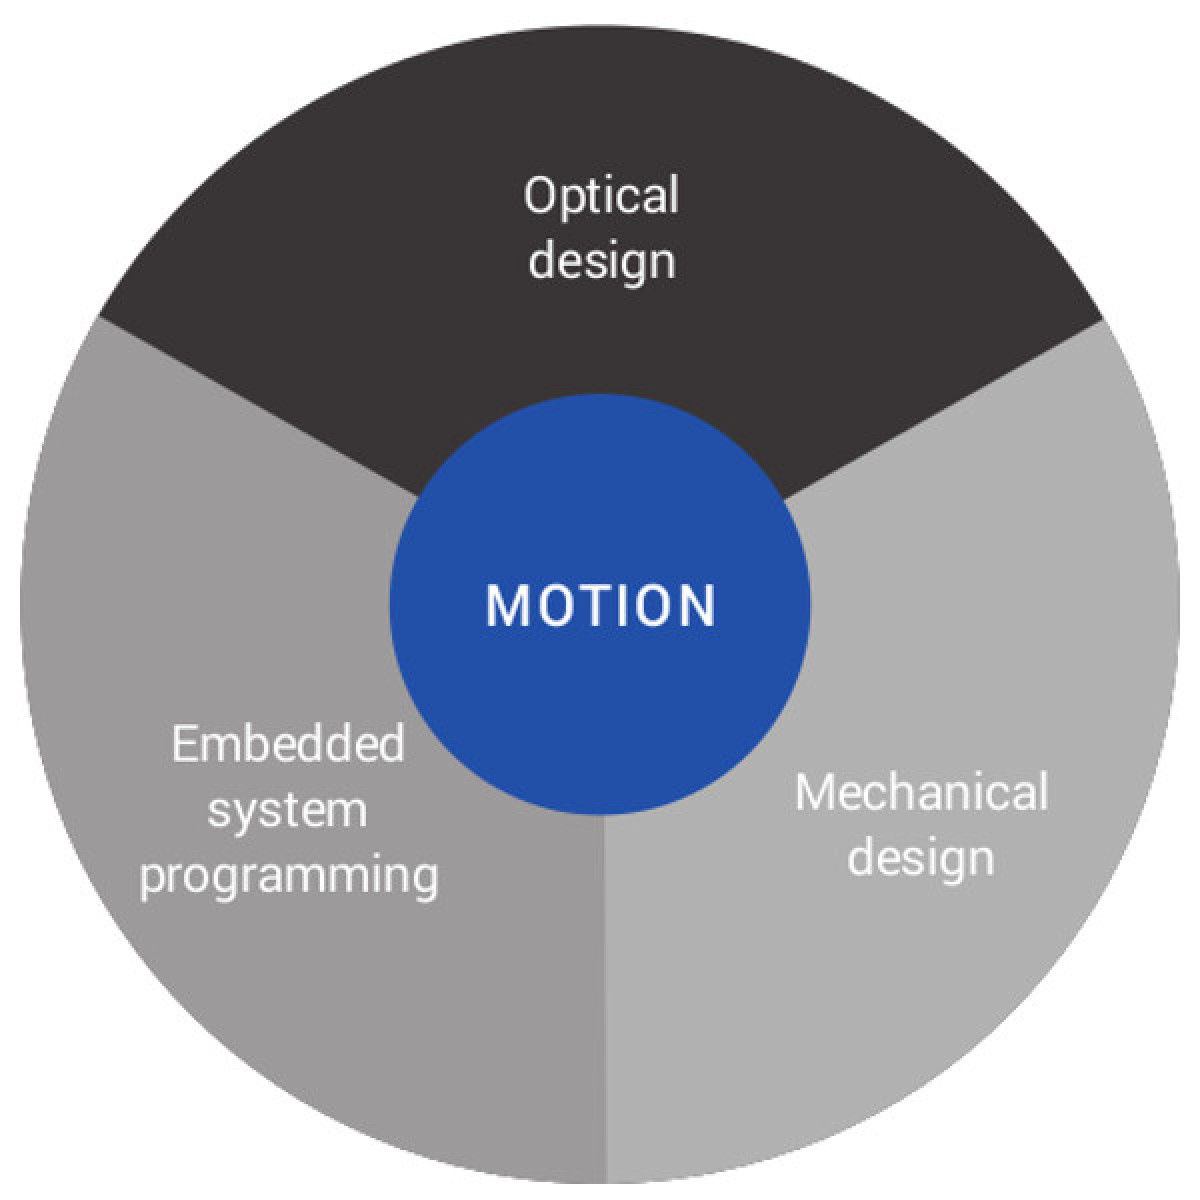 Software skills for machine vision product design | Opto